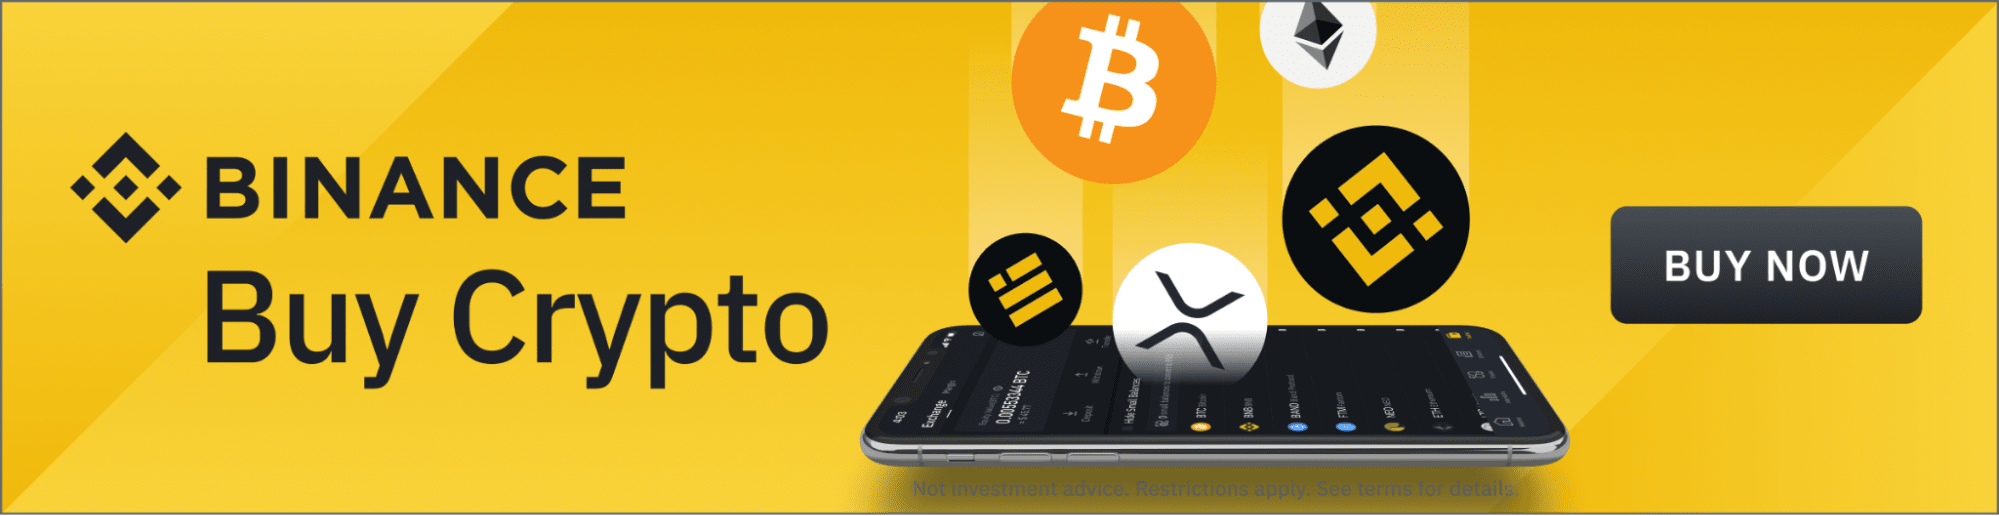 Bitcoin (BTC) Price Regains Strength: Has It Reached A Price Floor?Cryptocurrency Trading Signals, Strategies & Templates | DexStrats